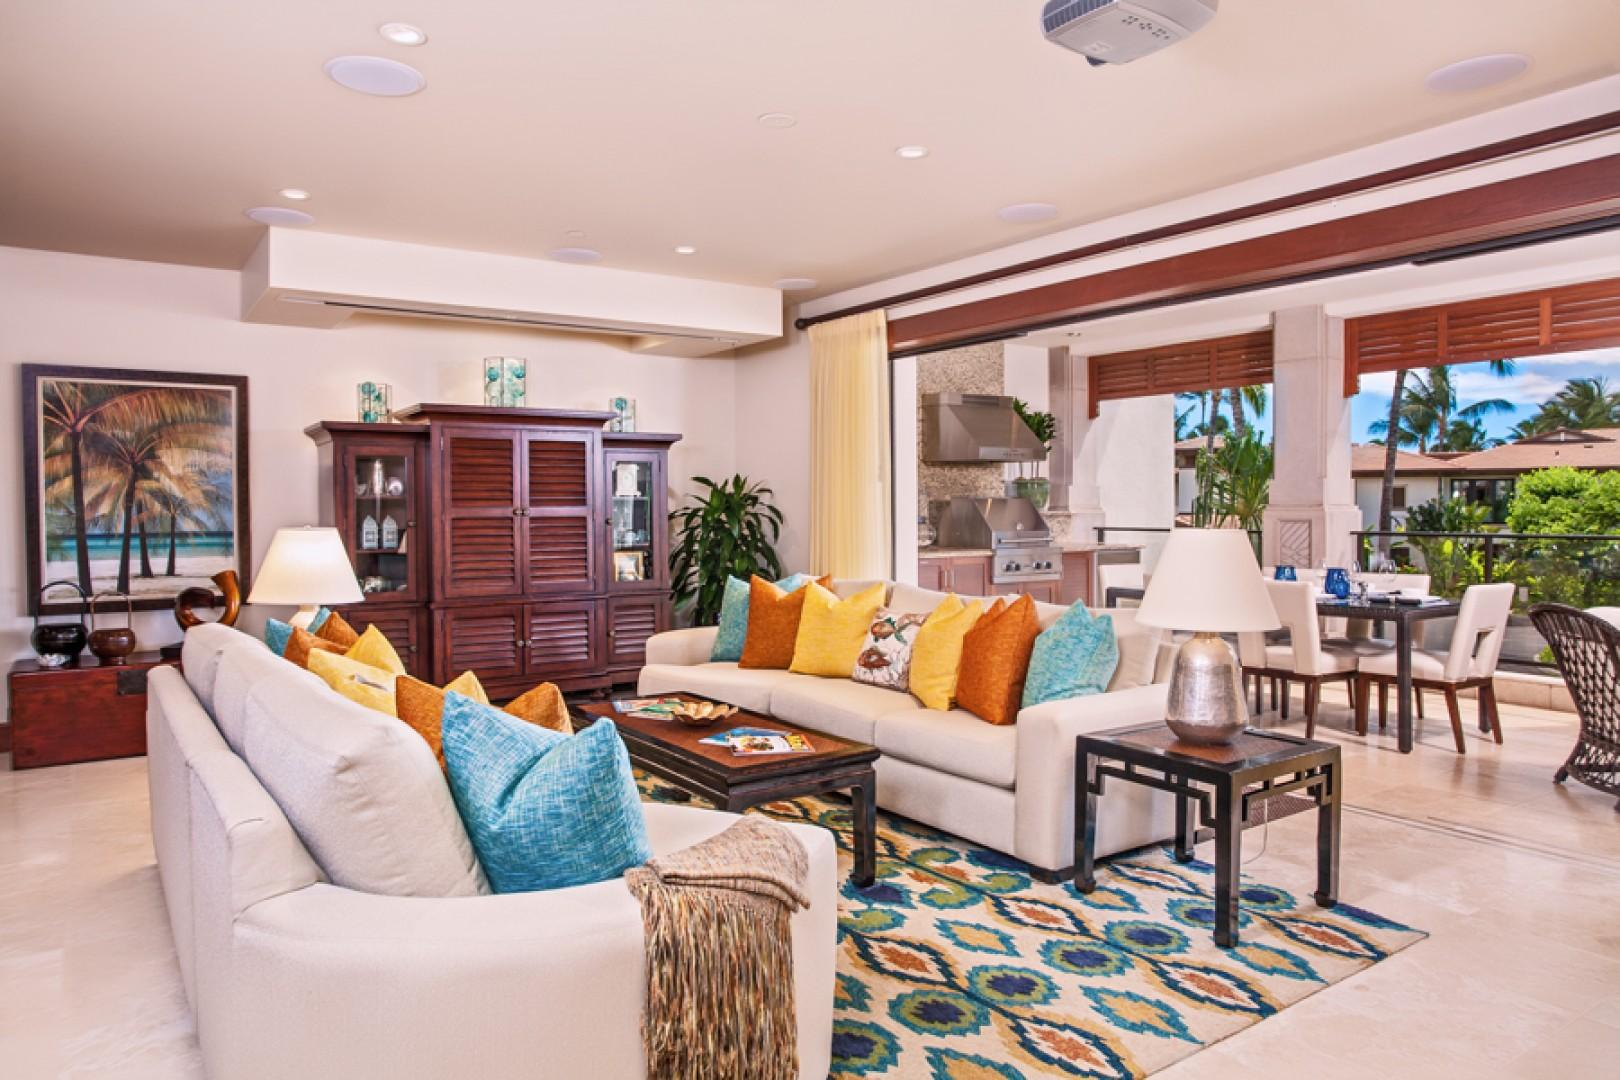 Castaway Cove C201 - Ocean View Great Room with Extensive Entertainment Center, Alfresco Covered Terrace Dining and Lounging